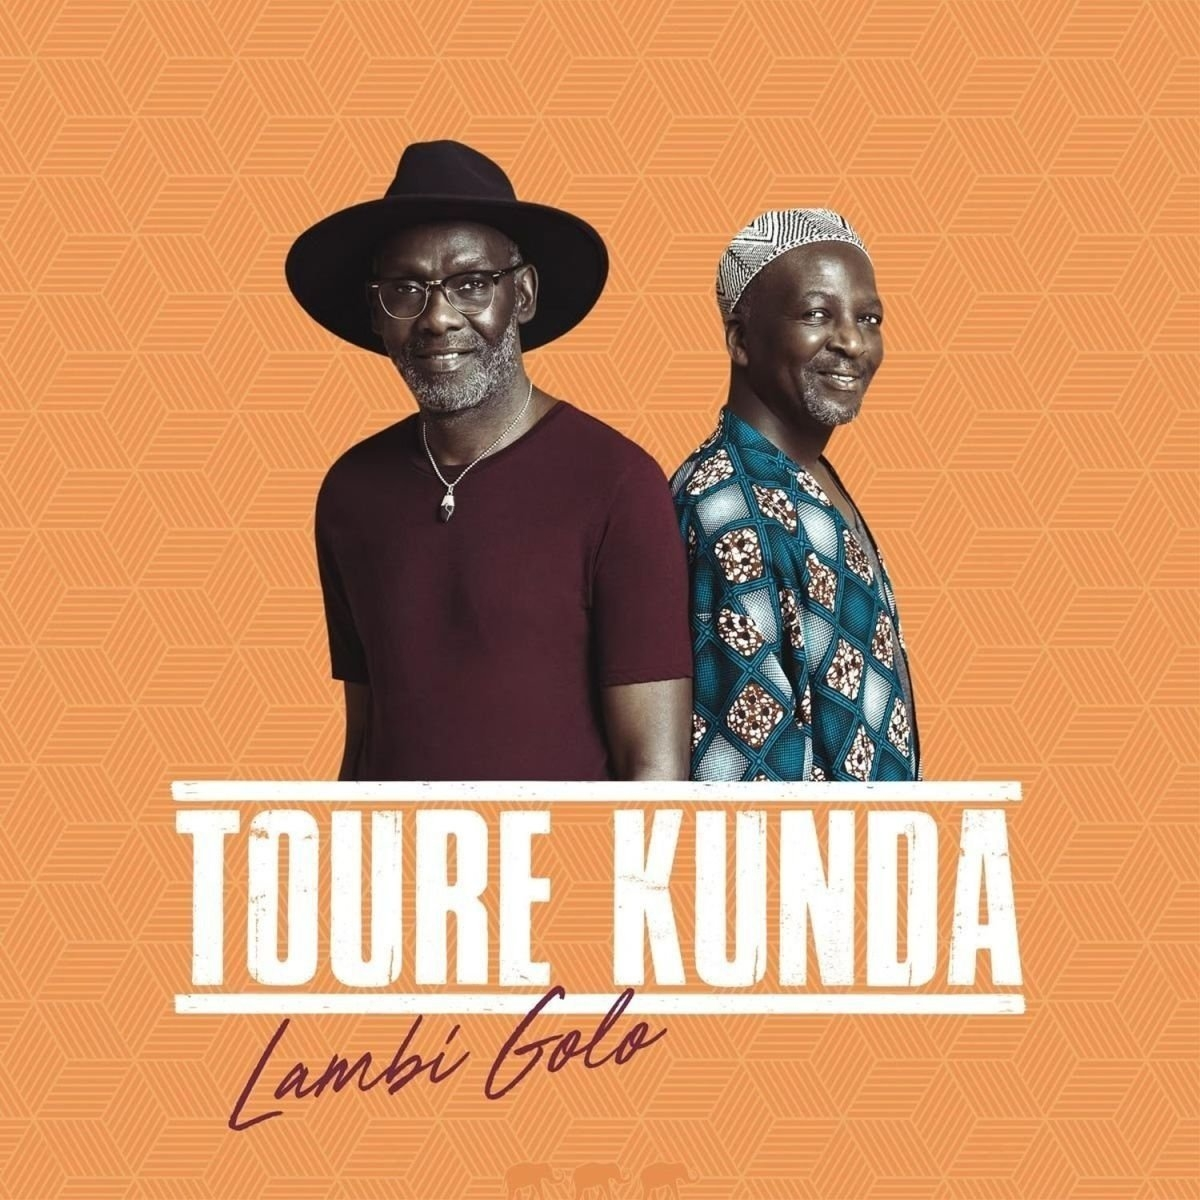 world 07 18 Toure kunda lambi